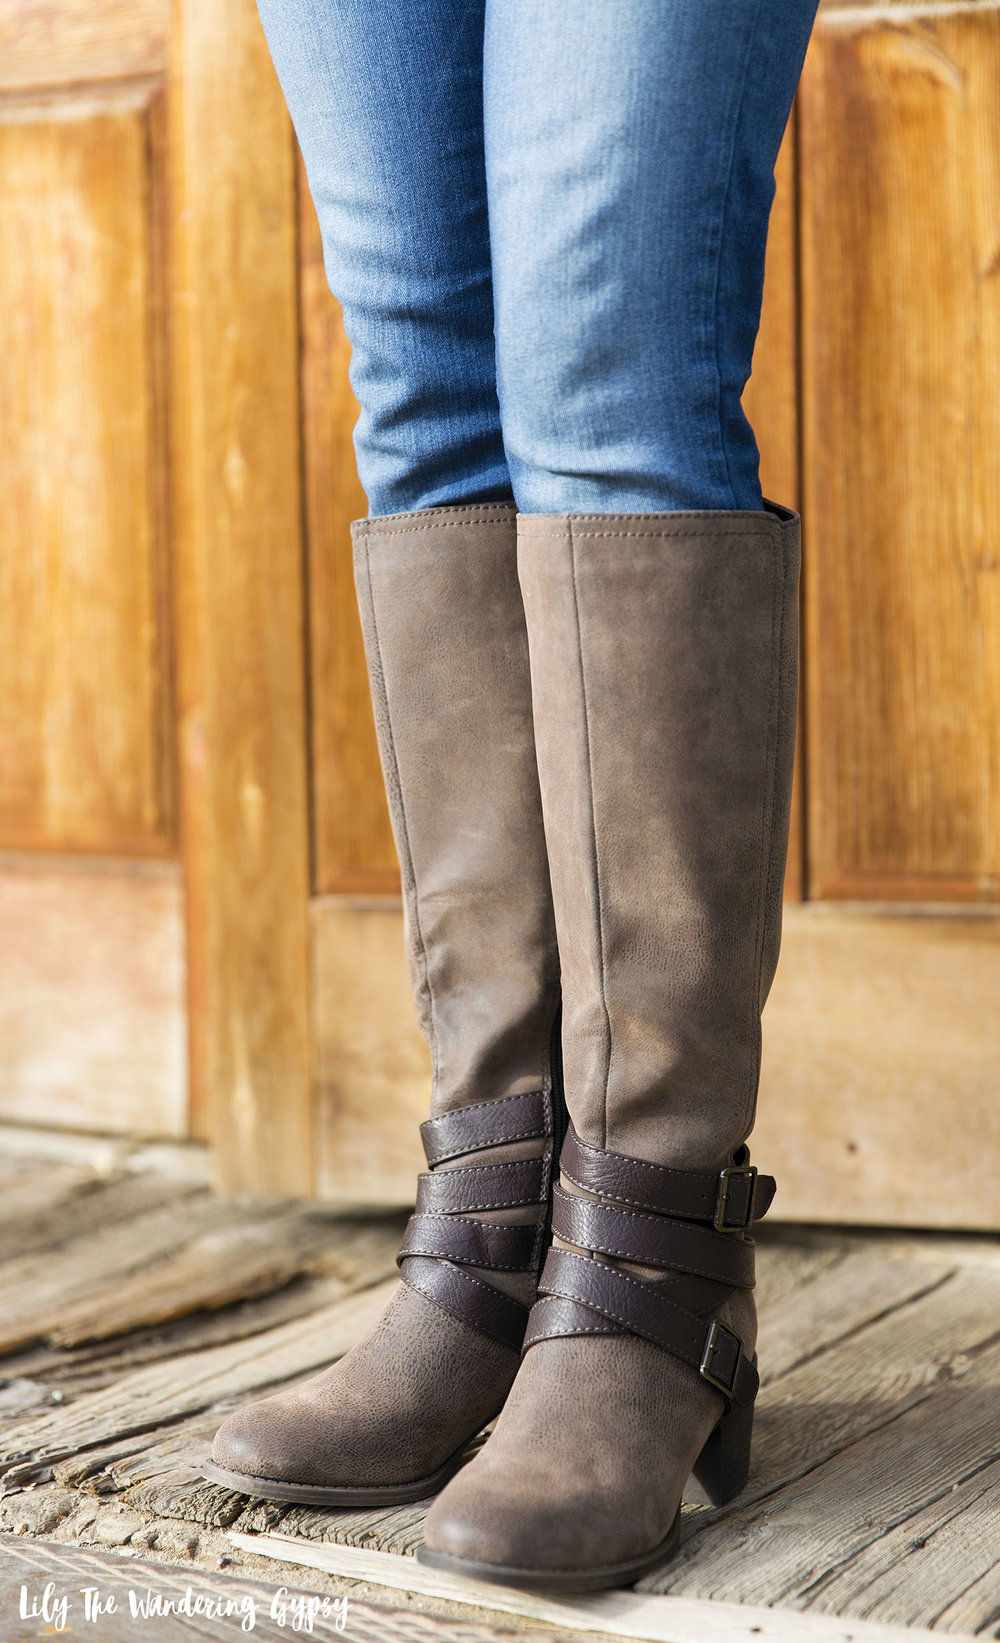 Sonoma Boots from Kohl's